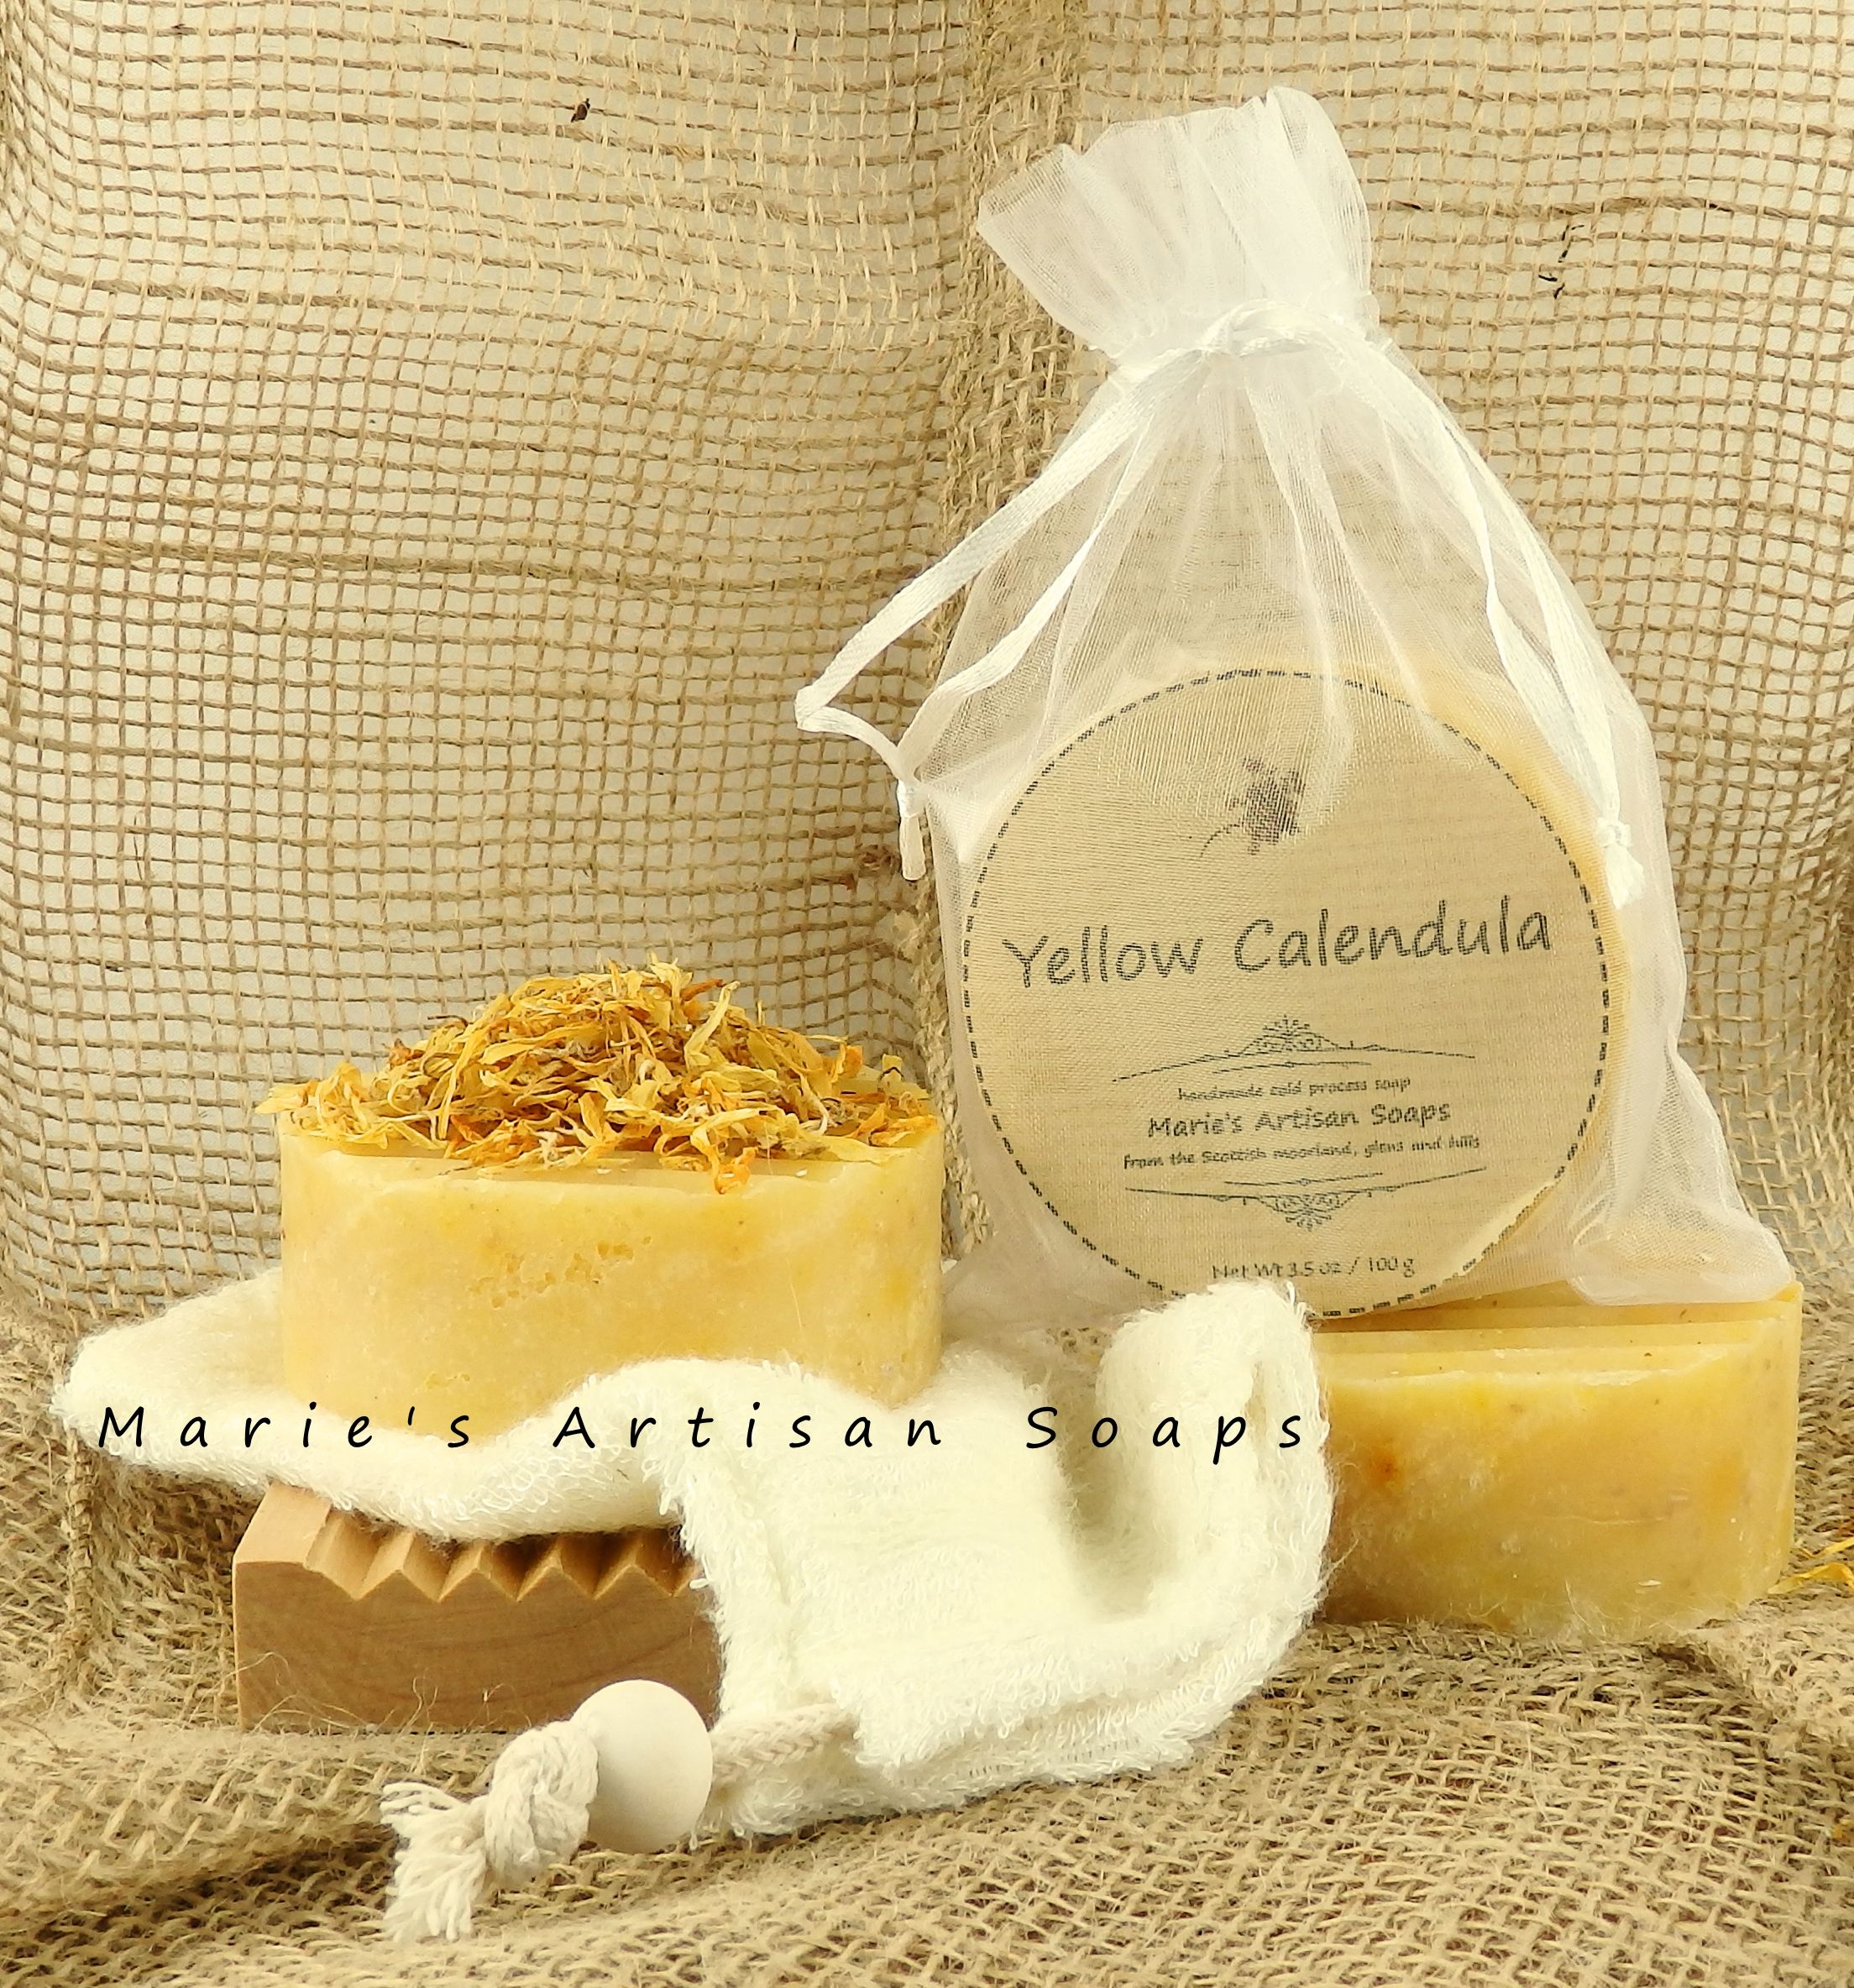 "Our ""Yellow Calendula "" bar of soap is our best seller soap! We are working in our workshop and will be restocking more soon! We have few bars available, visit our on line shop and get yours. Contains Tea Tree Oil which can improve your skin and treat acne naturally helping to prevent acne and other minor skin irritations. This beneficial oil has been blended with Geranium and Rosewood pure essential oils to lift your spirit and relief stress."